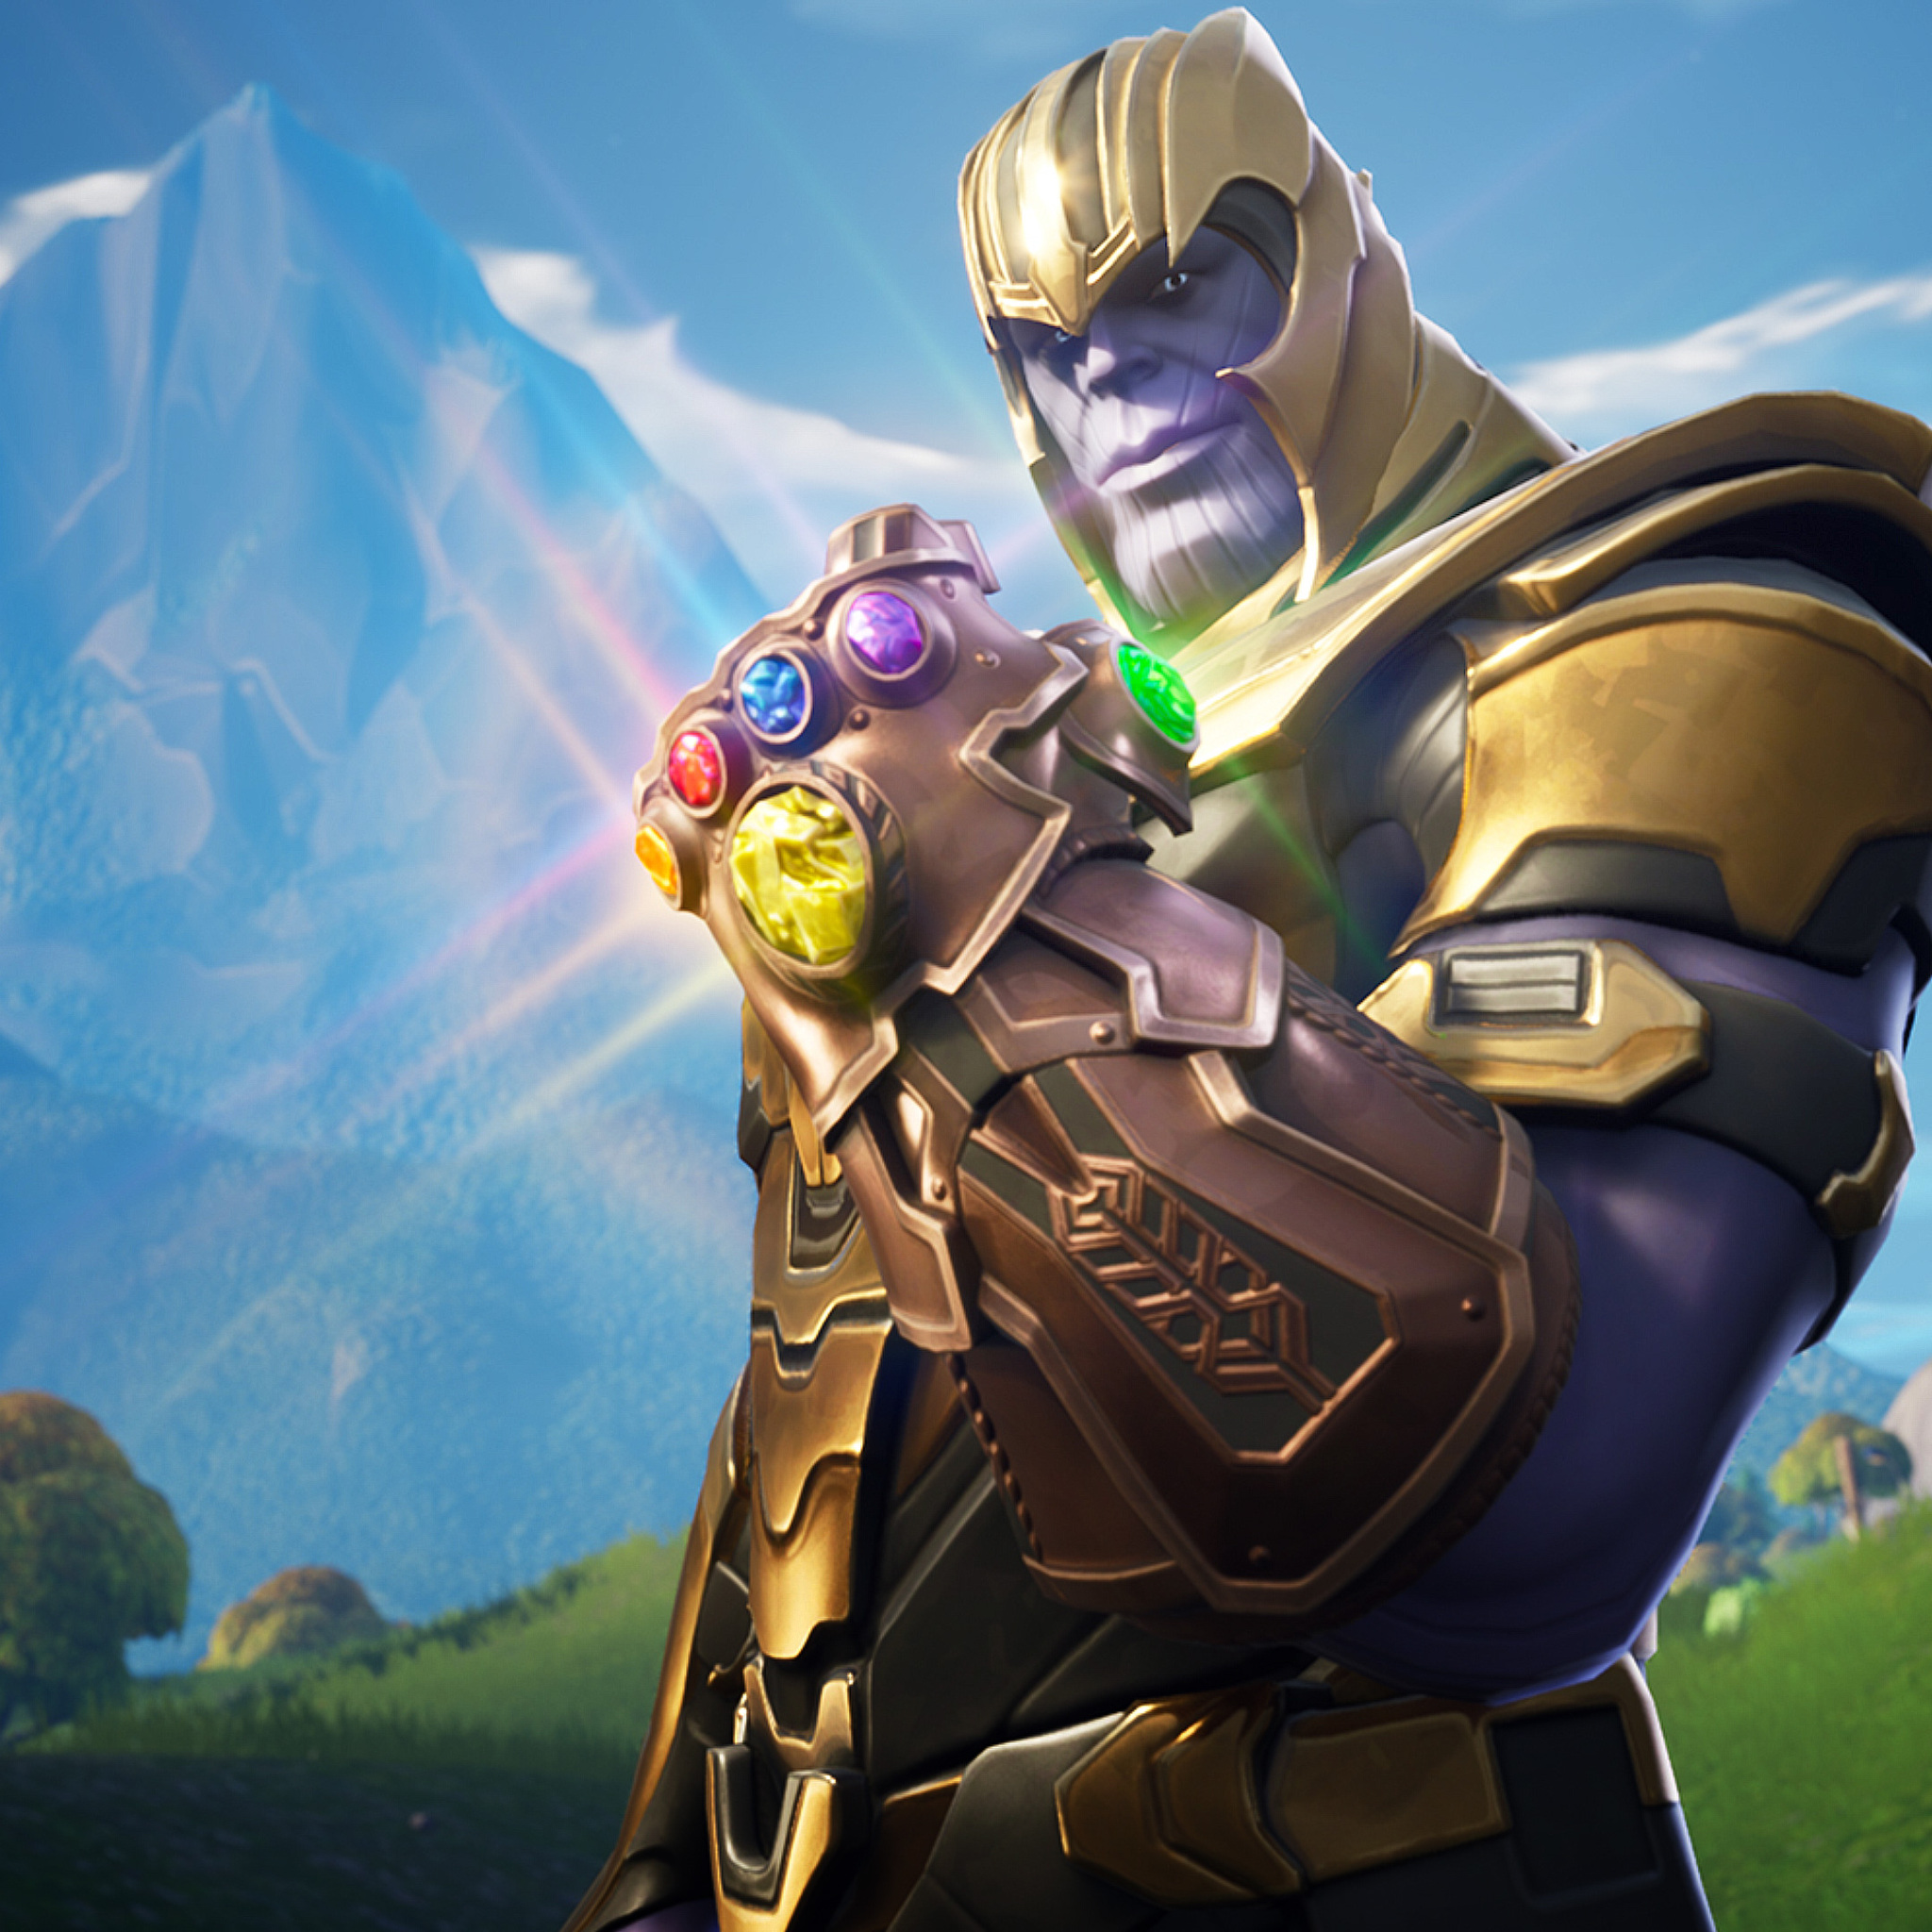 2048x2048 Thanos In Fortnite Battle Royale Ipad Air Hd 4k Wallpapers